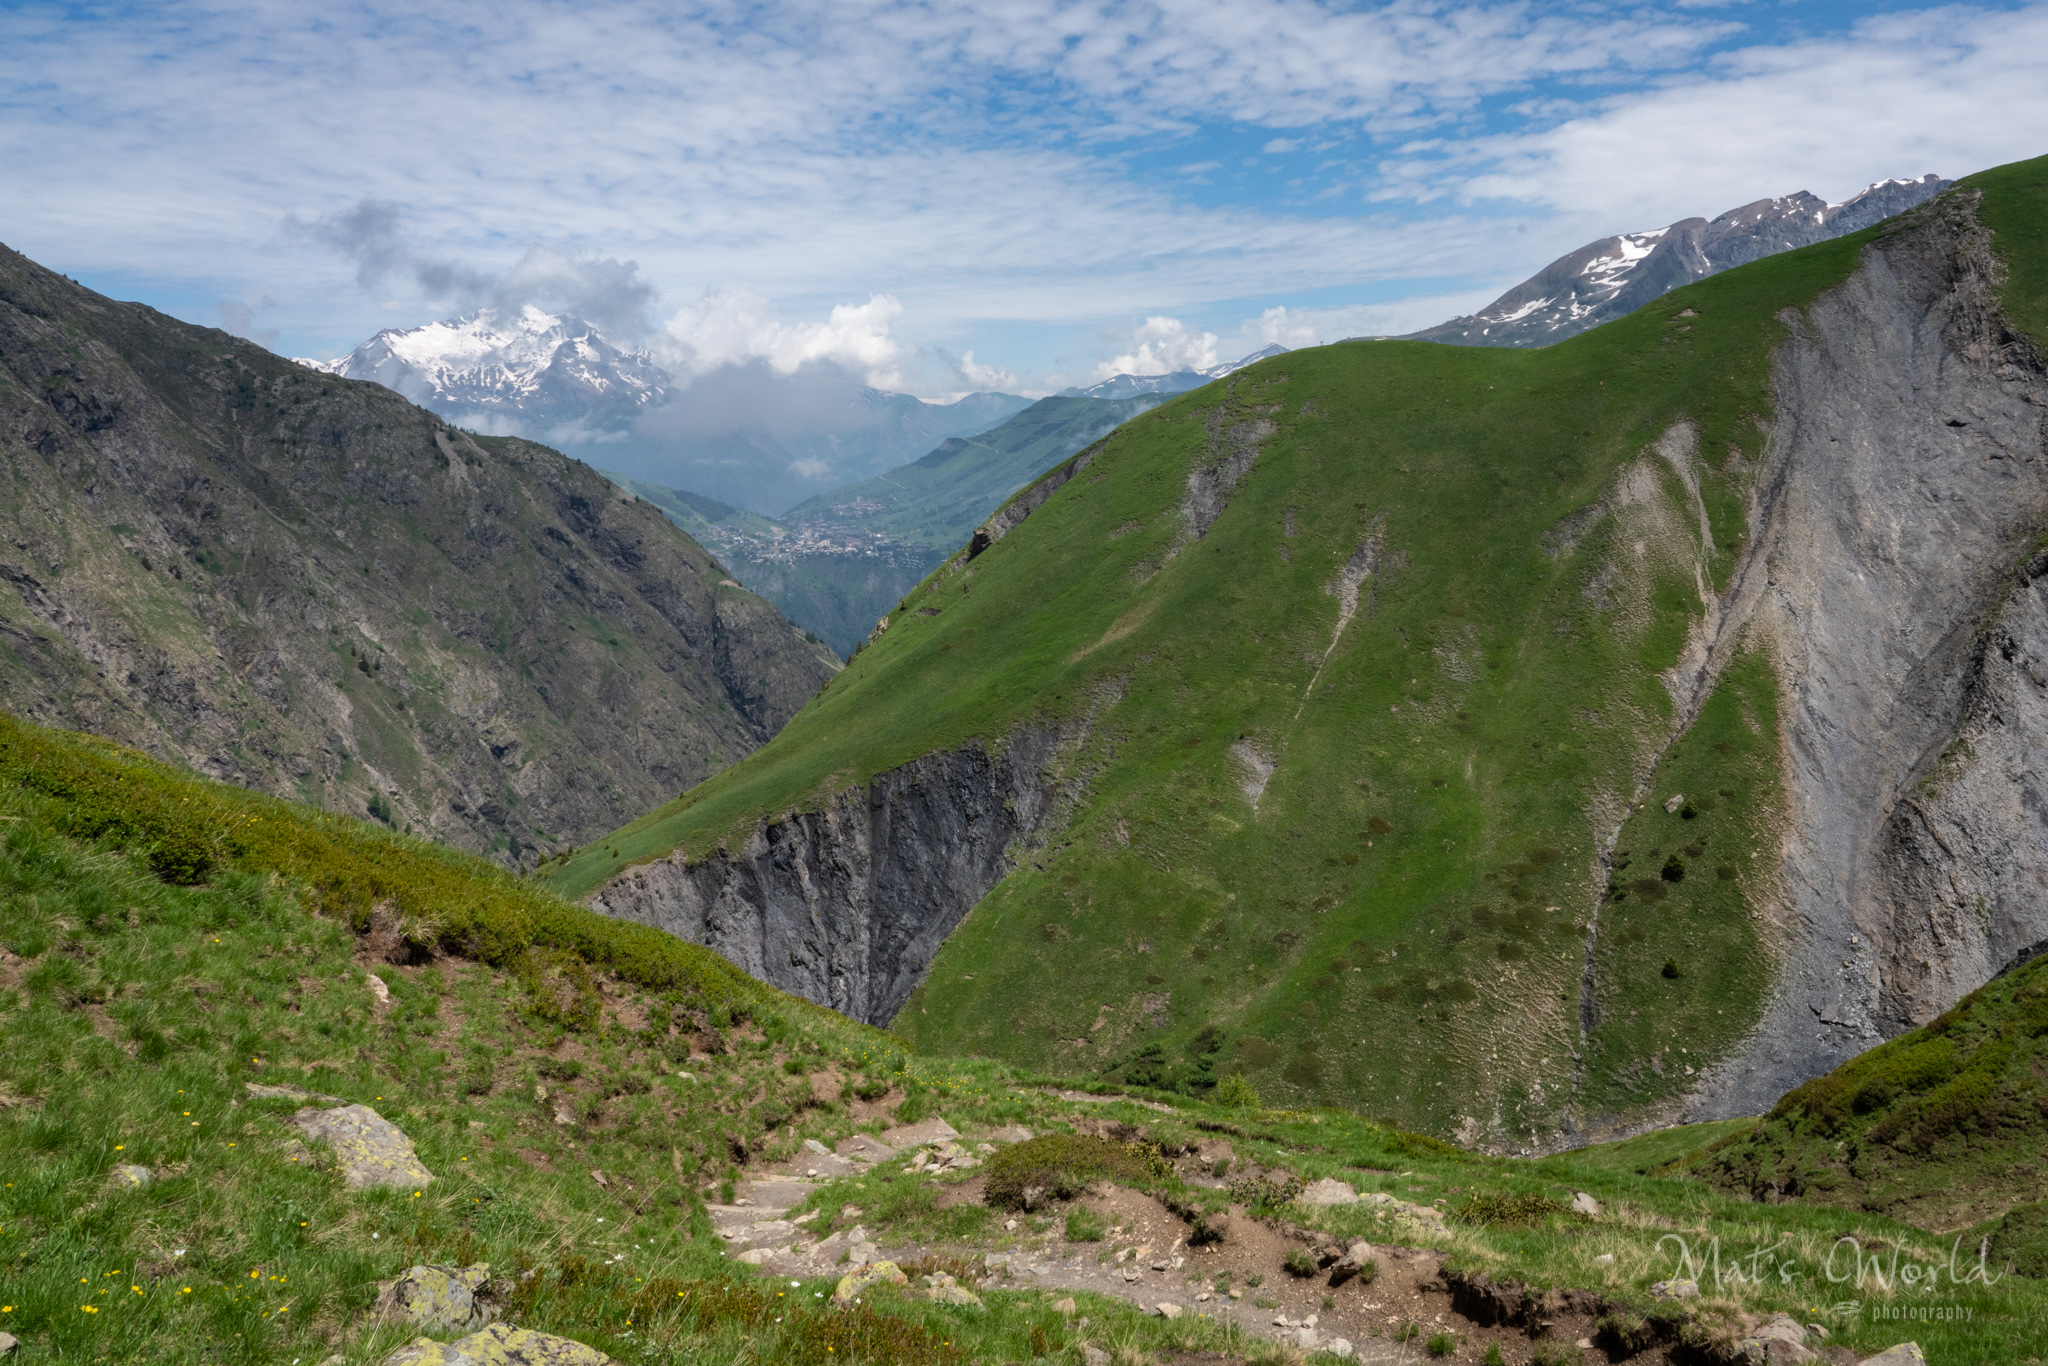 A long section with many switchbacks leads from the river up a steep mountain. We could see  Les Deux Alpes  ski resort in the distance.